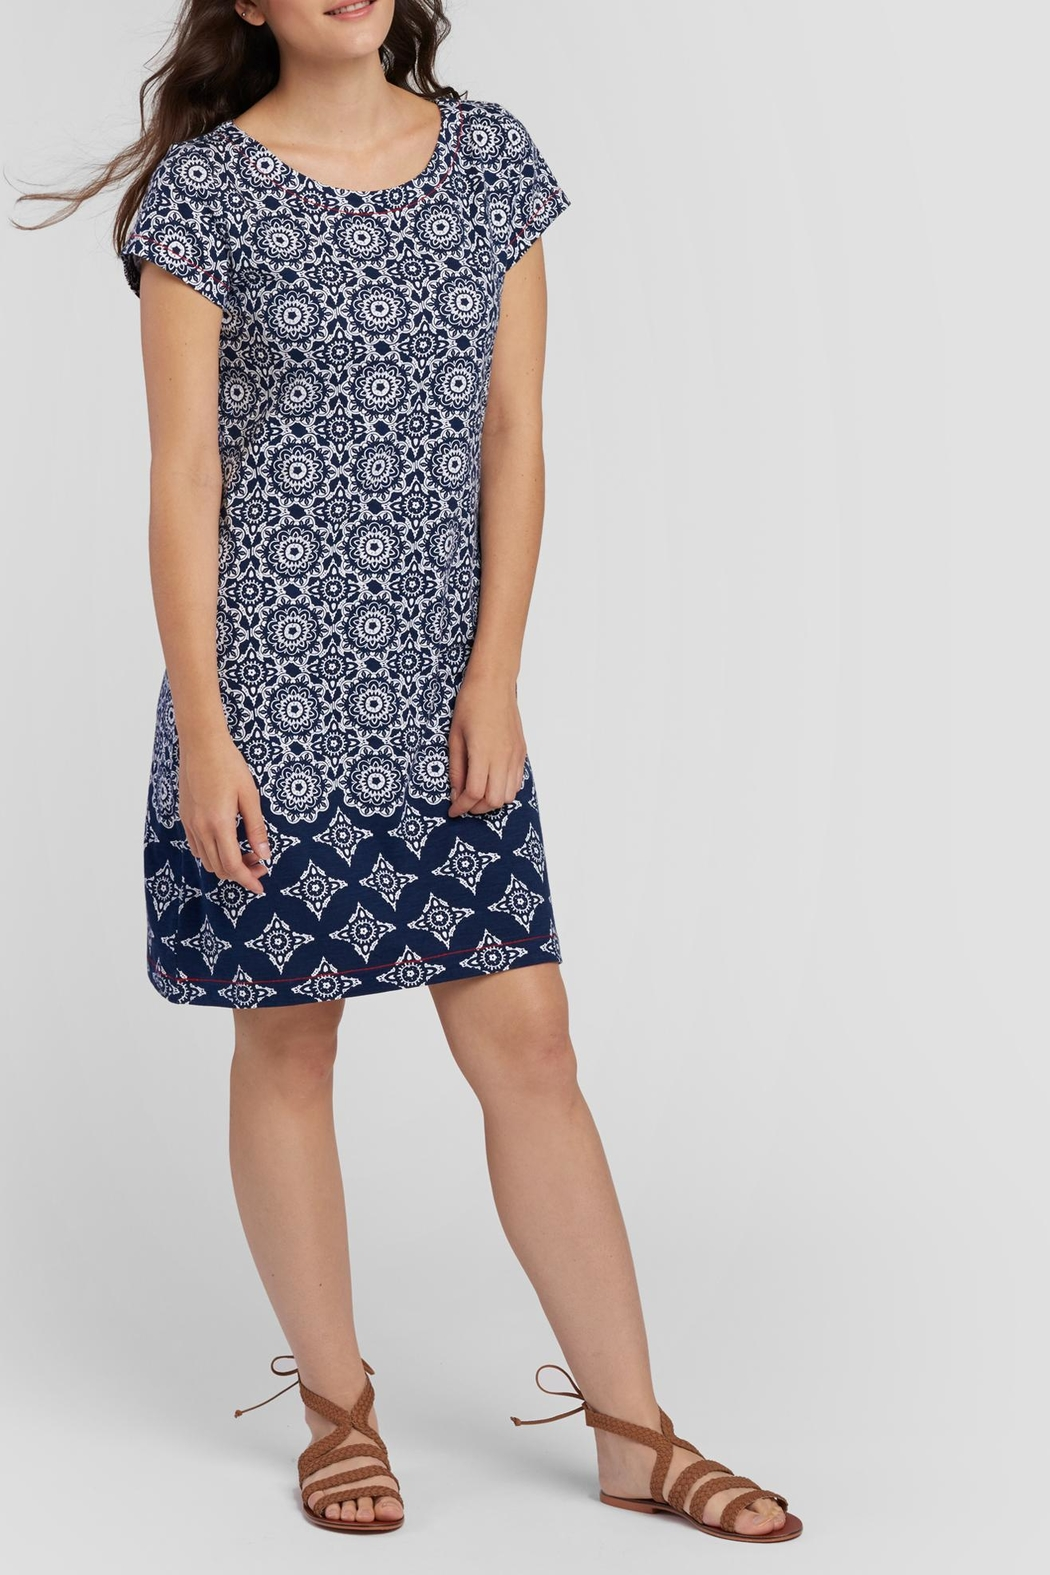 Hatley Shift Printed Dress - Main Image